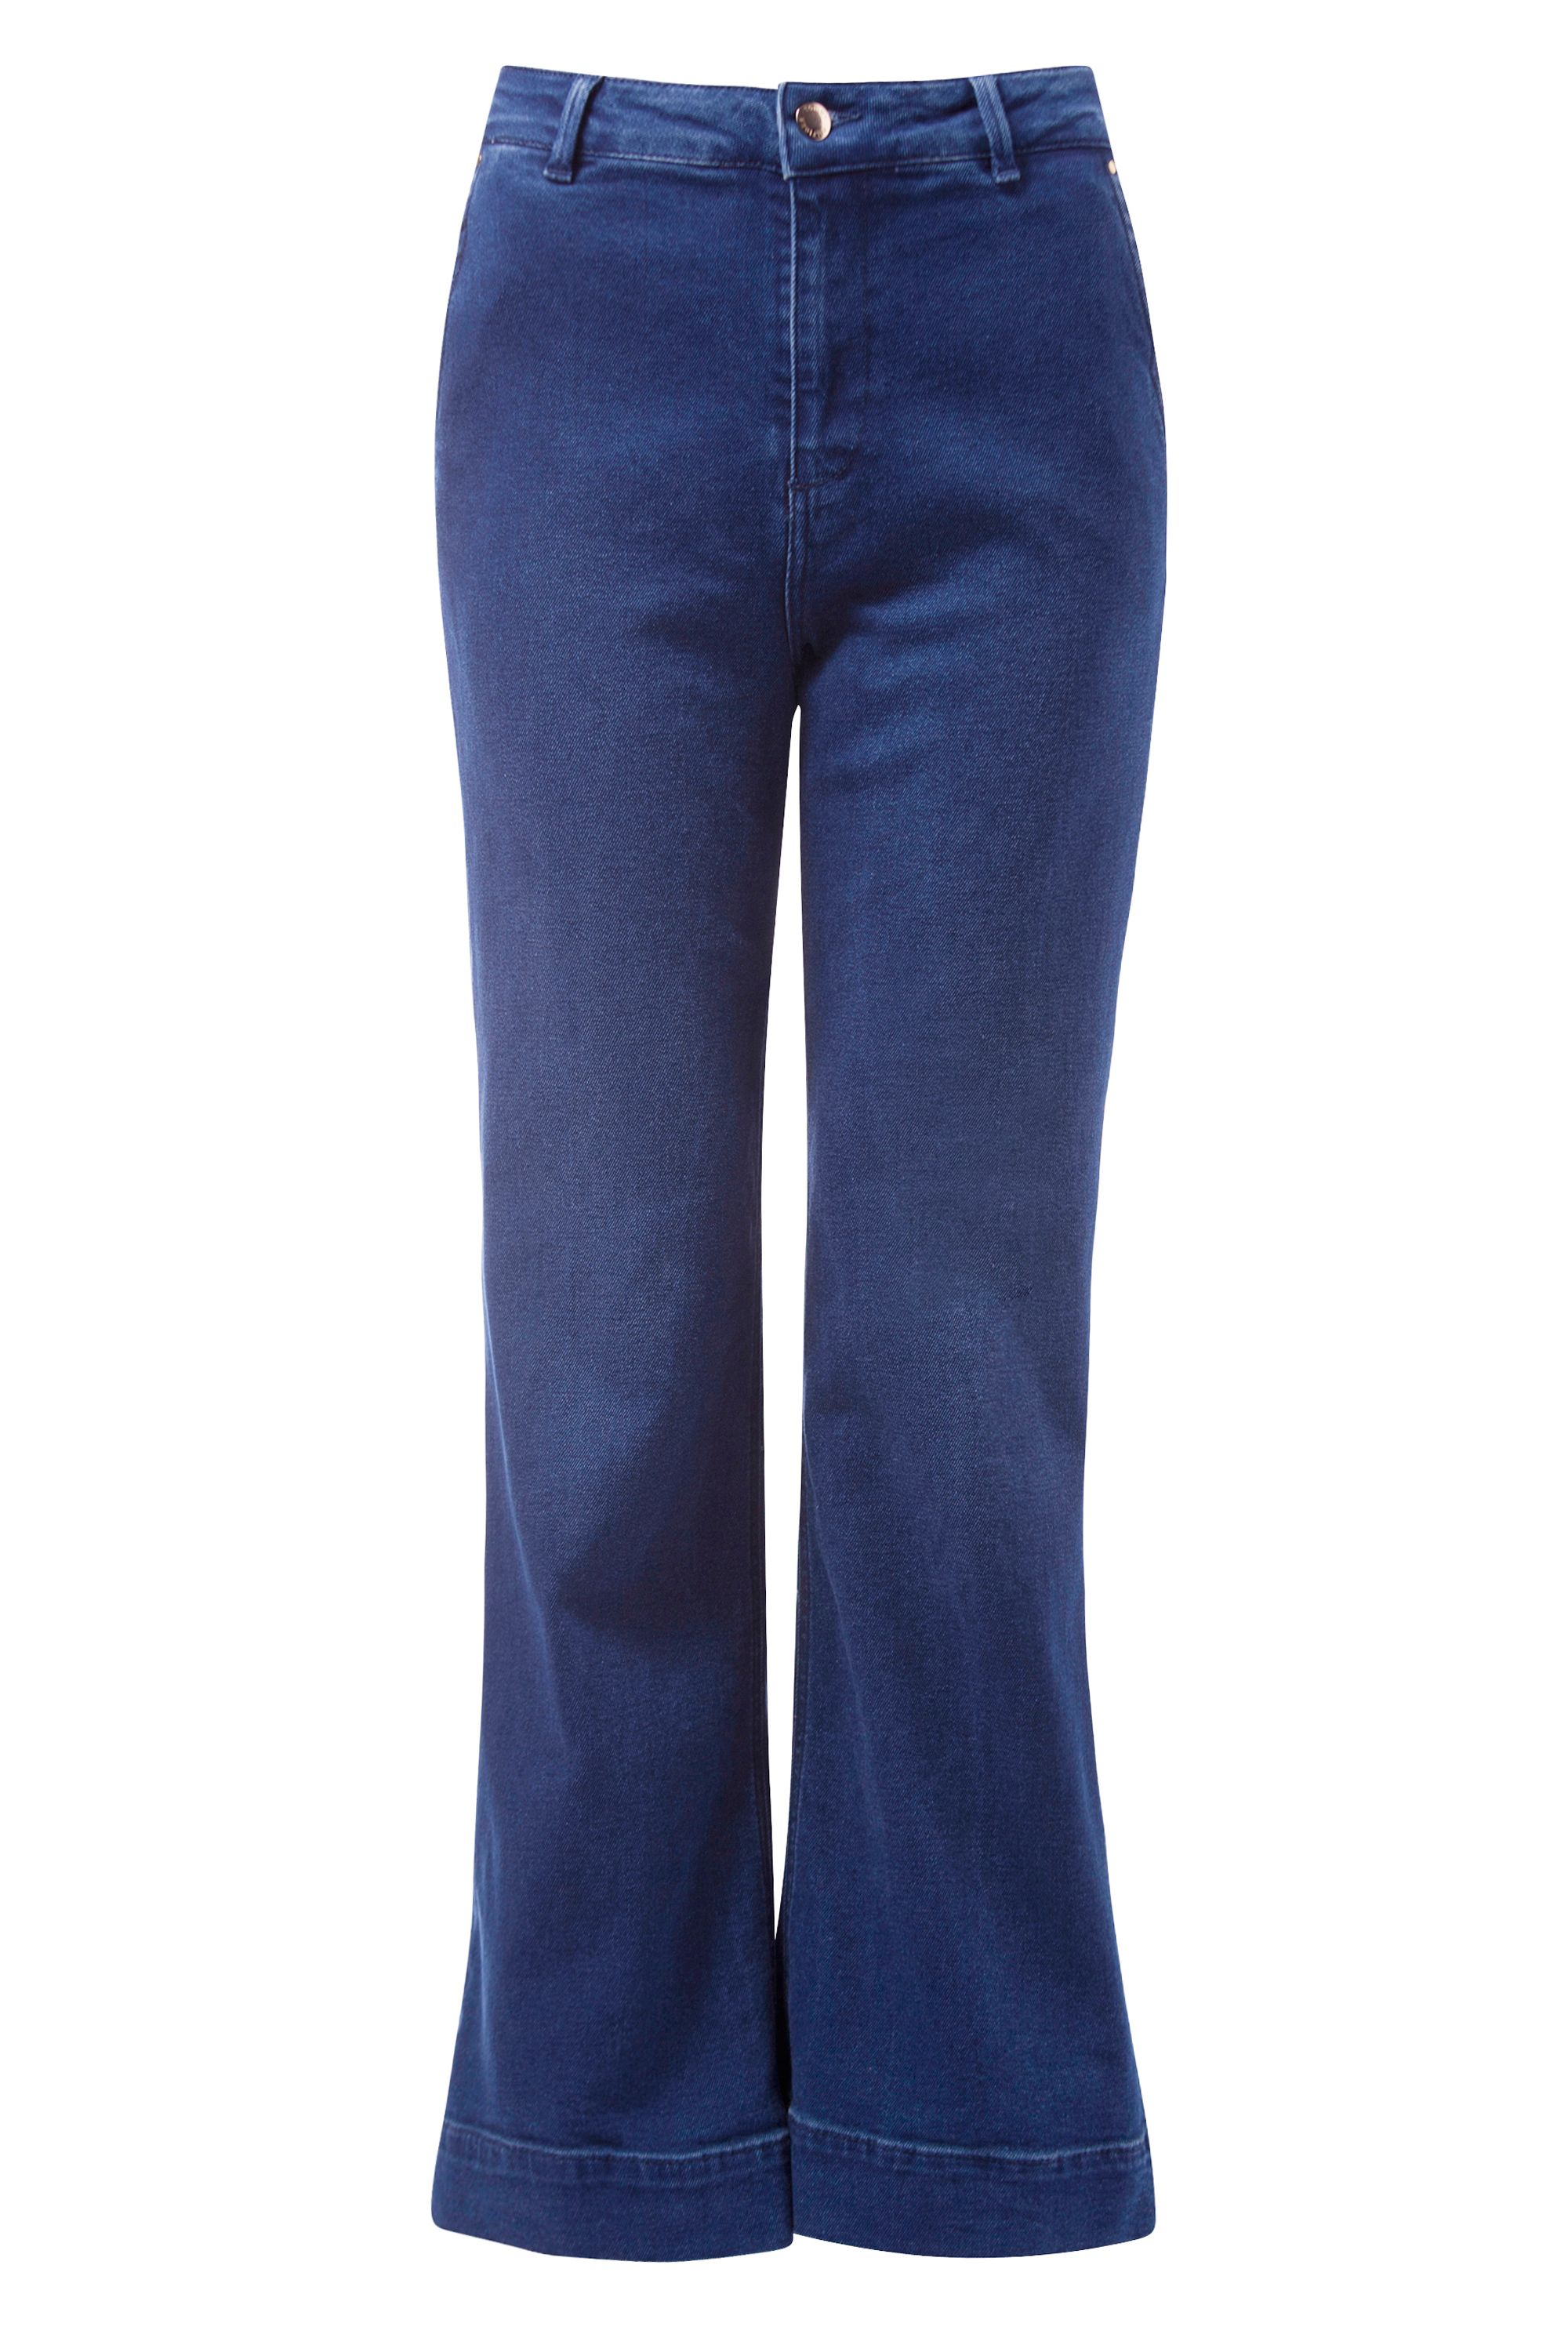 Tommy Hilfiger Tailored Wide Leg Ankle Cynthia Culottes, Blue